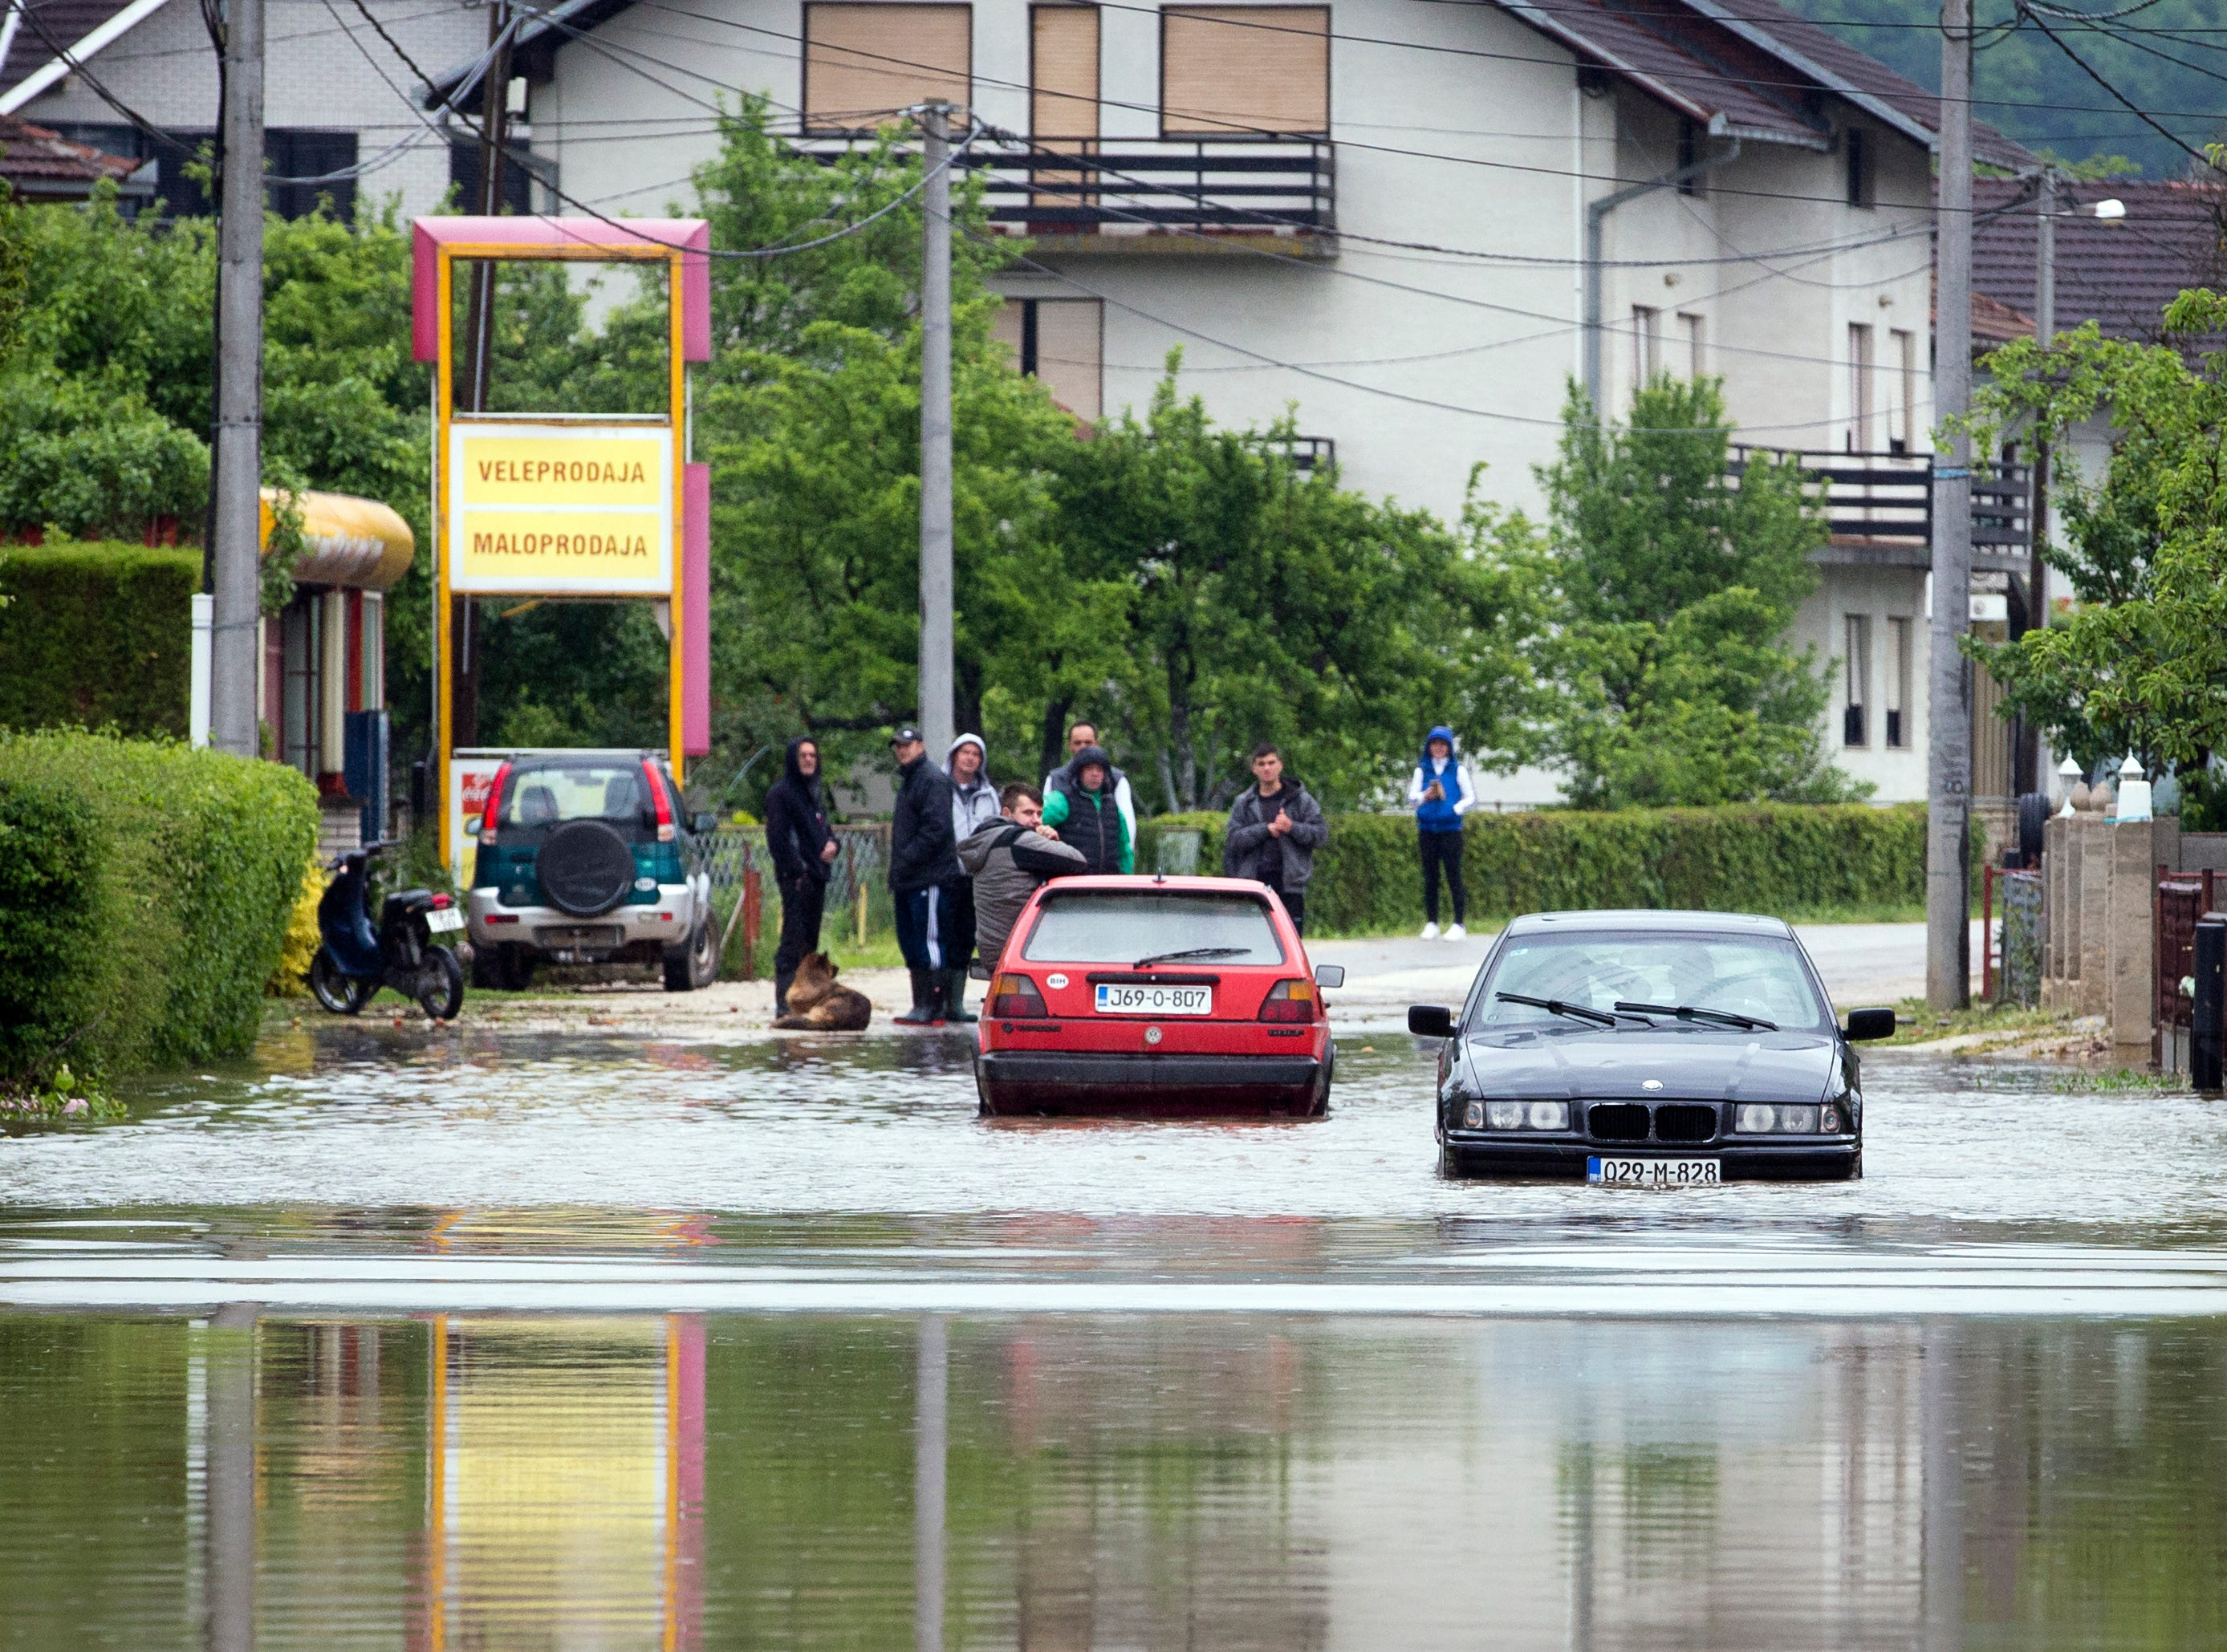 Residents attempt to drive through a flooded street in Sanski Most, Bosnia-Herzegovina, Tuesday, May 14, 2019. Homes and roads have been flooded in parts of Bosnia after rivers broke their banks following heavy rains, triggering concerns Tuesday of a repeat of floods five years ago when dozens died.